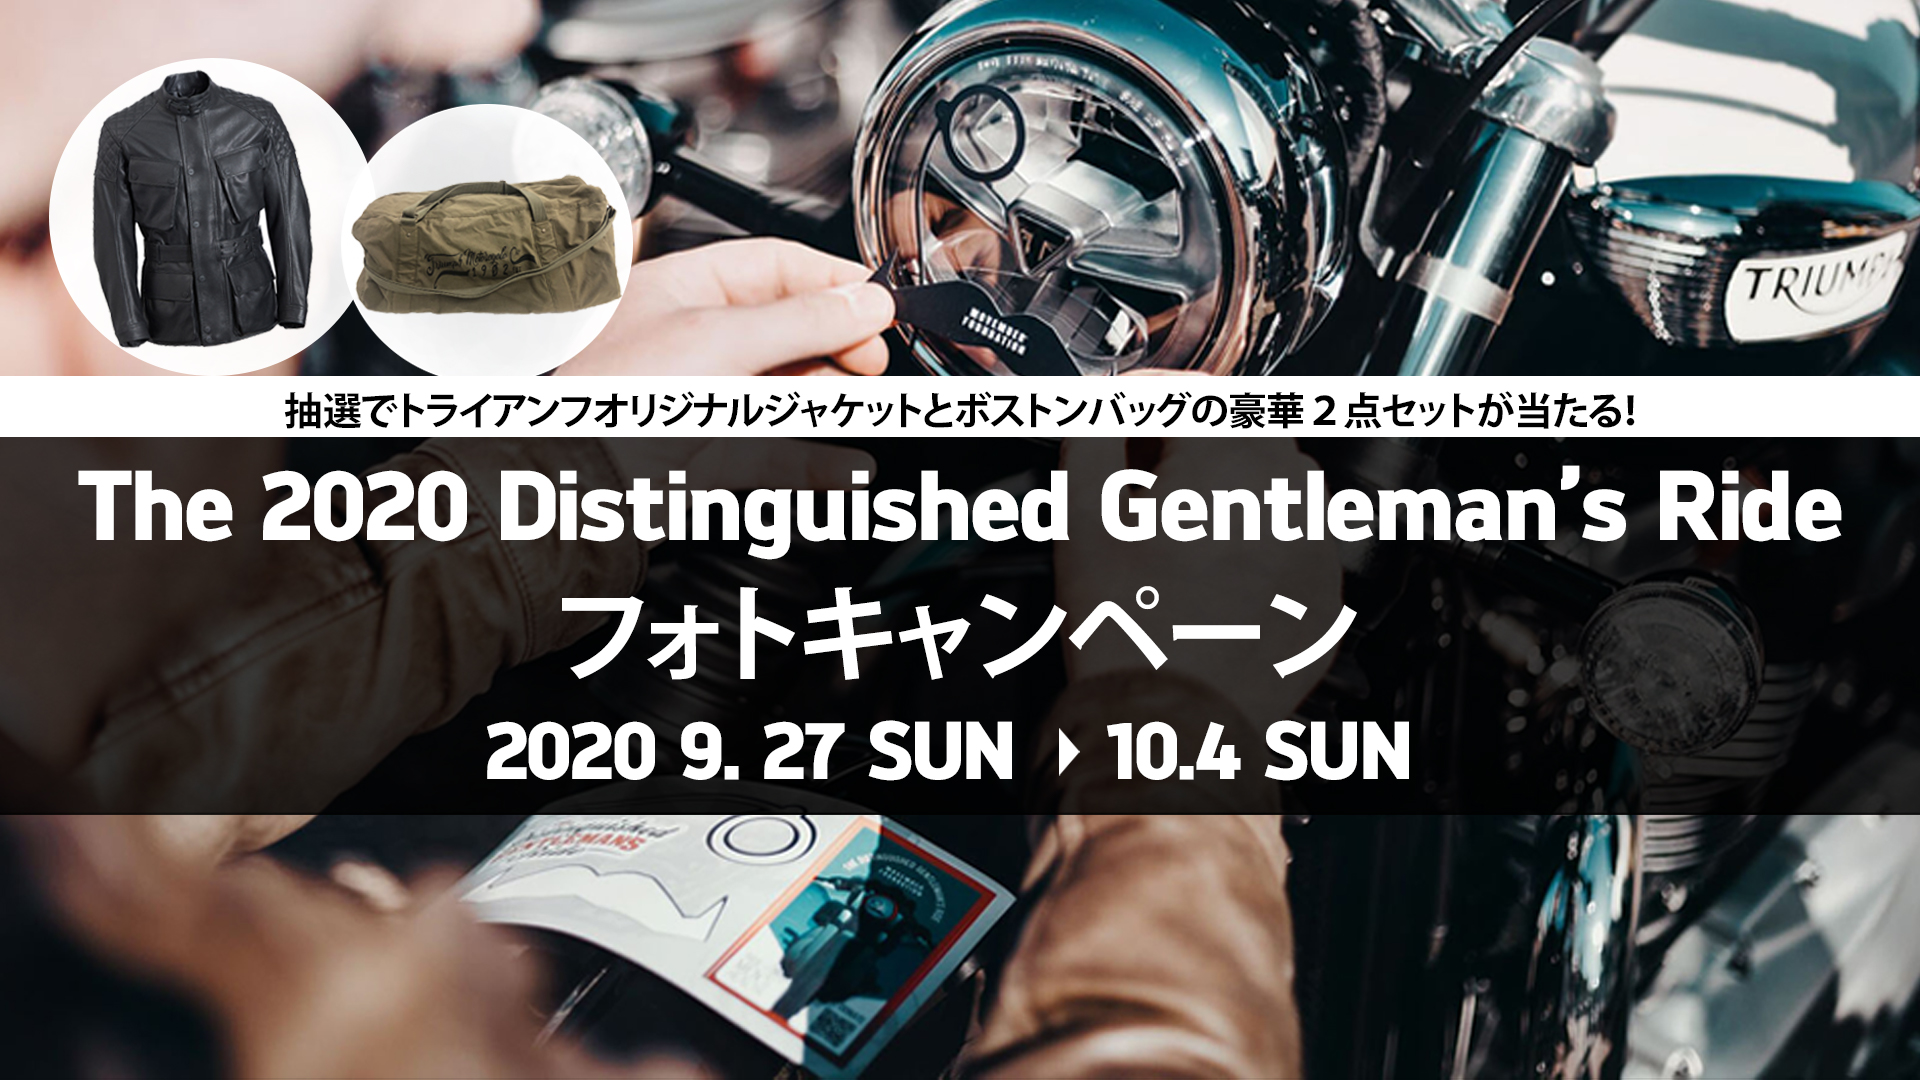 The 2020 Distinguished Gentleman's Ride フォトキャンペーン開催